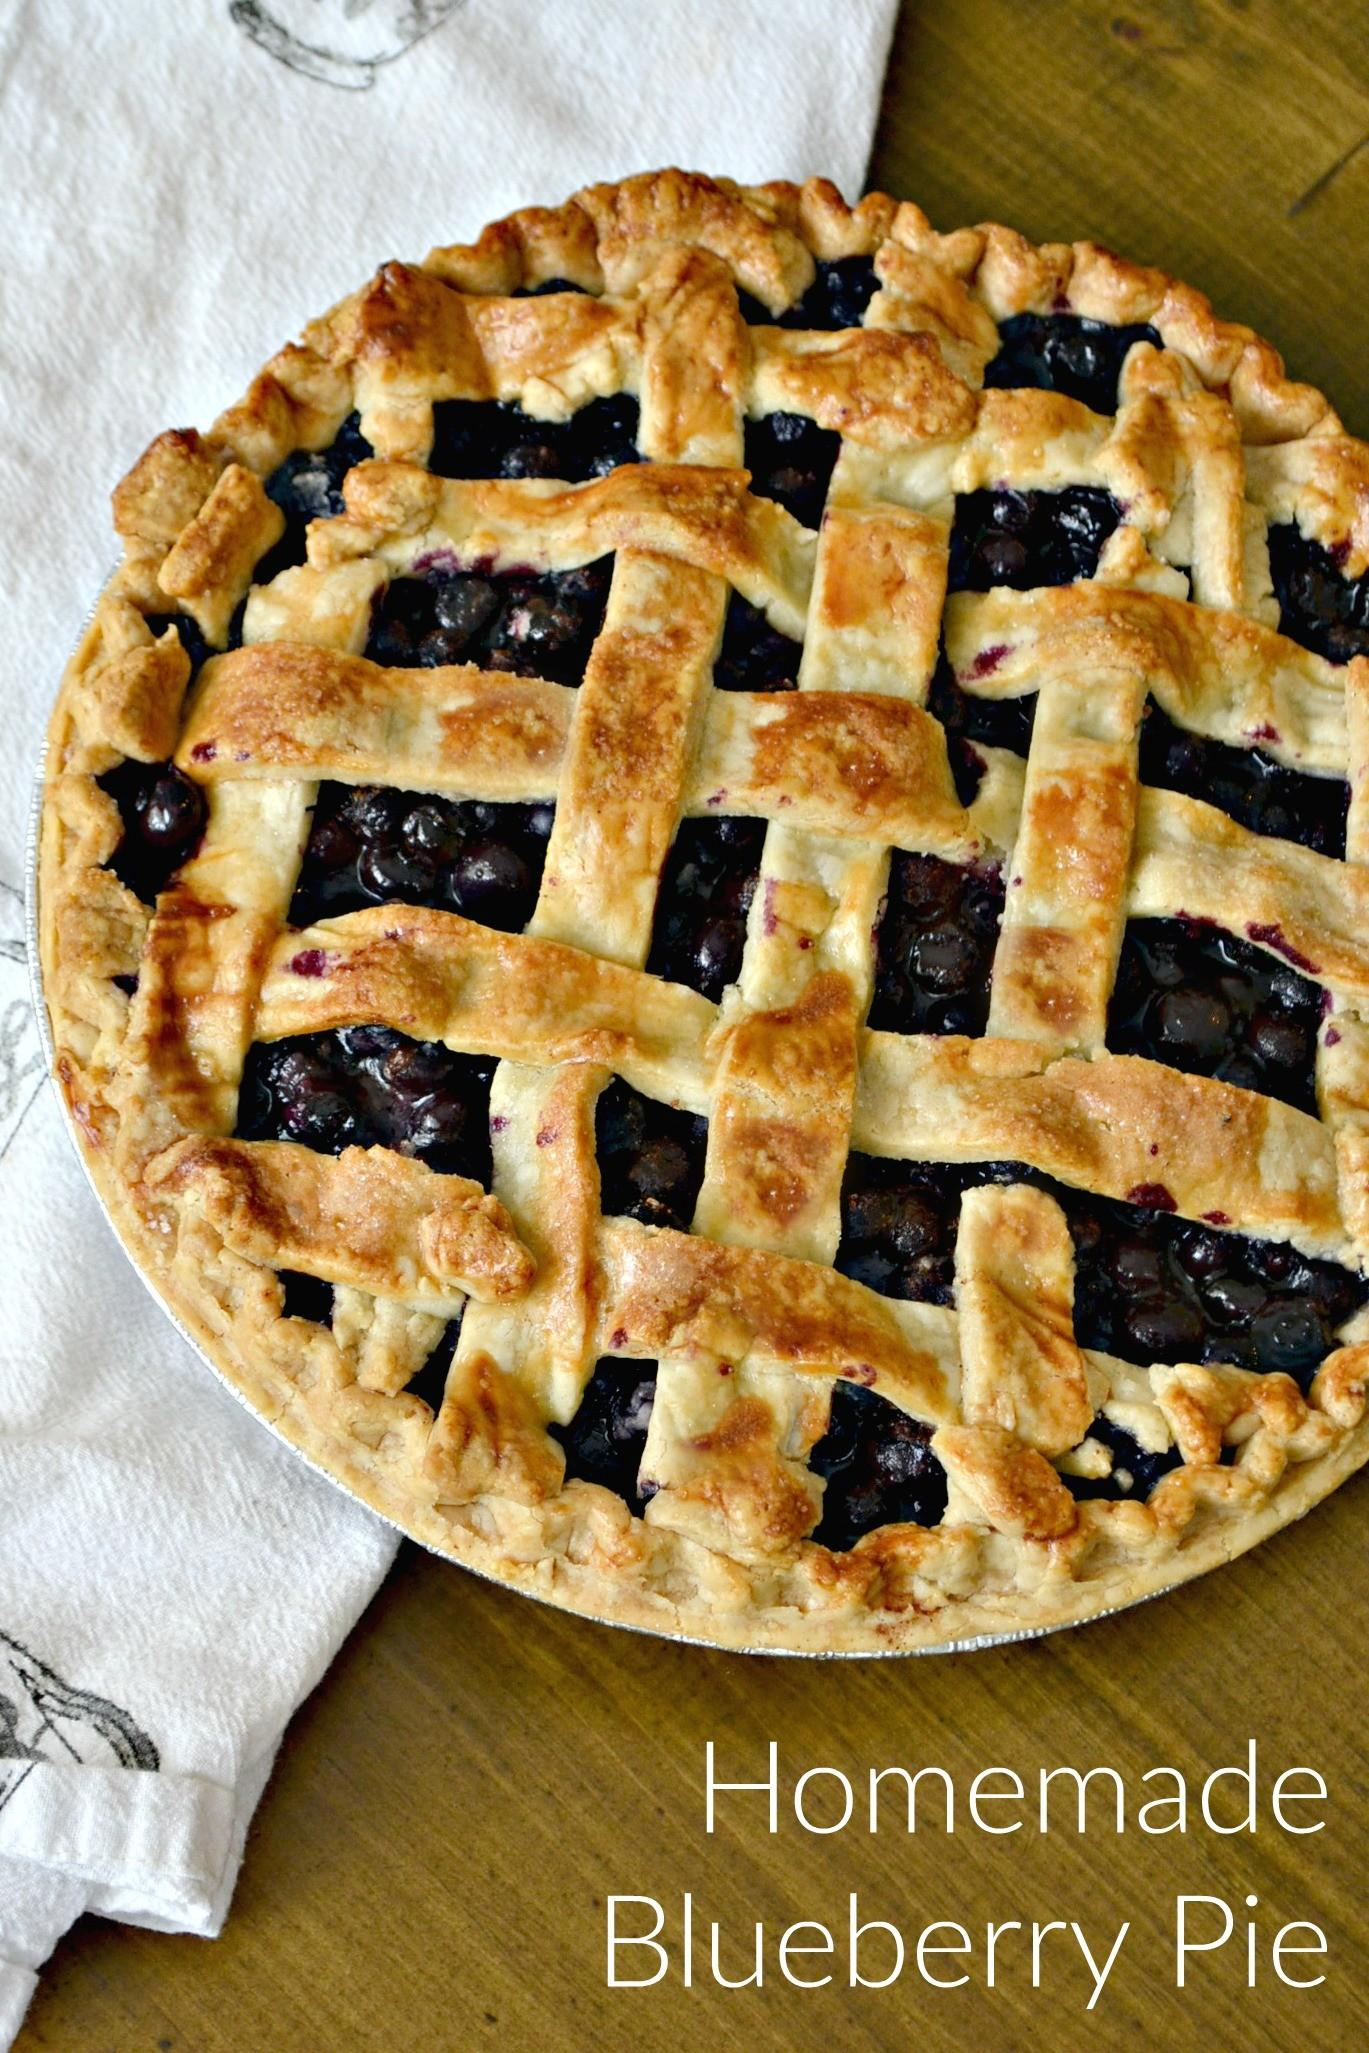 Southern Living Blueberry Pie 2014